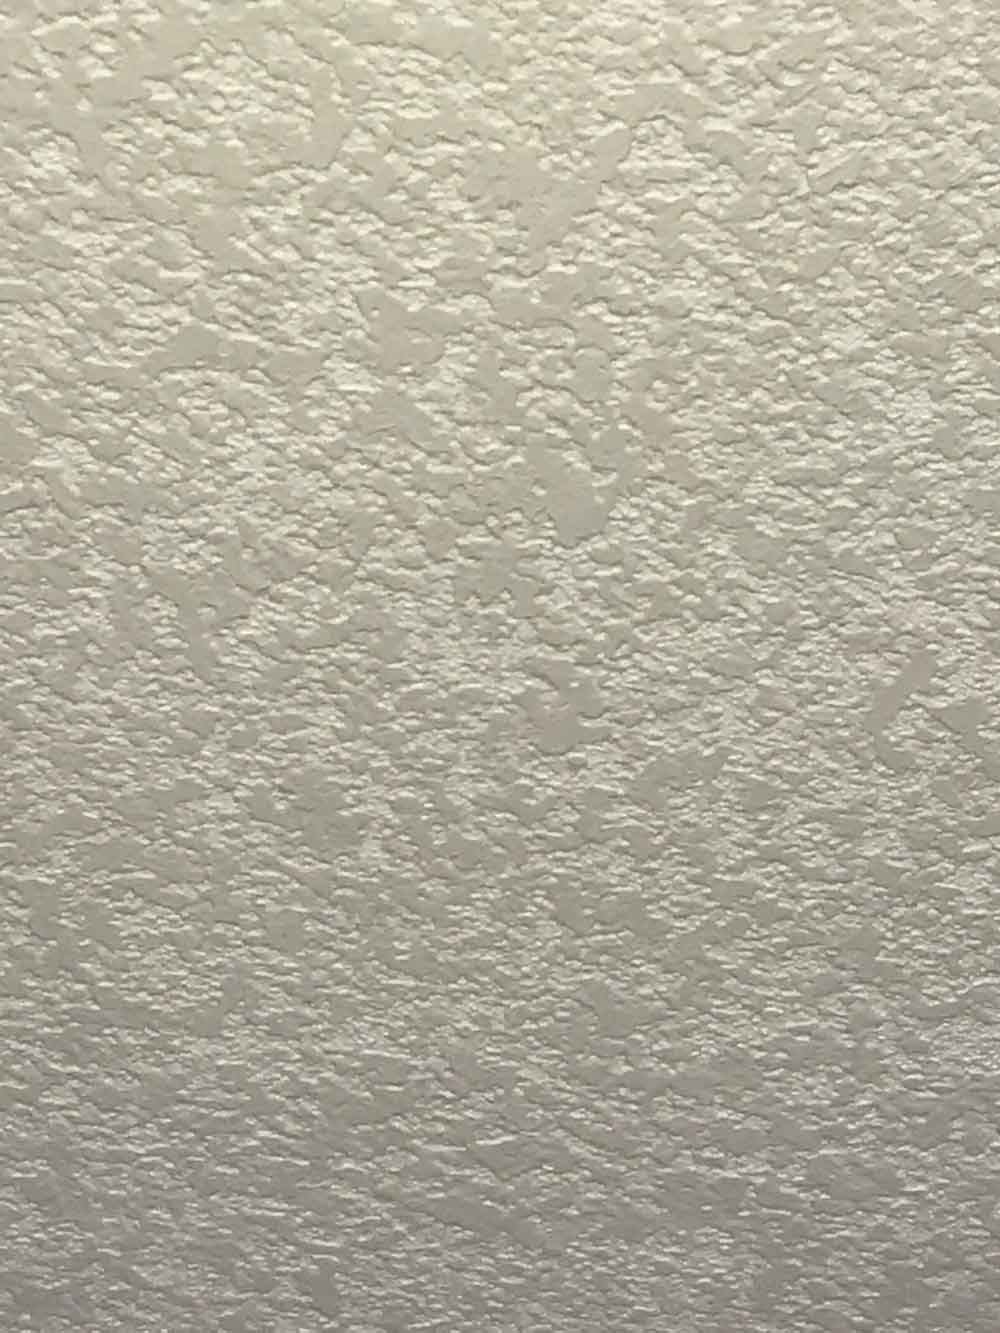 PDS-knockdown-texture Painting A Mobile Home Ceiling on mdf beams for ceilings, painting mobile home cabinets, painting mobile home paneling, molding for cathedral ceilings, painting mobile home countertops,